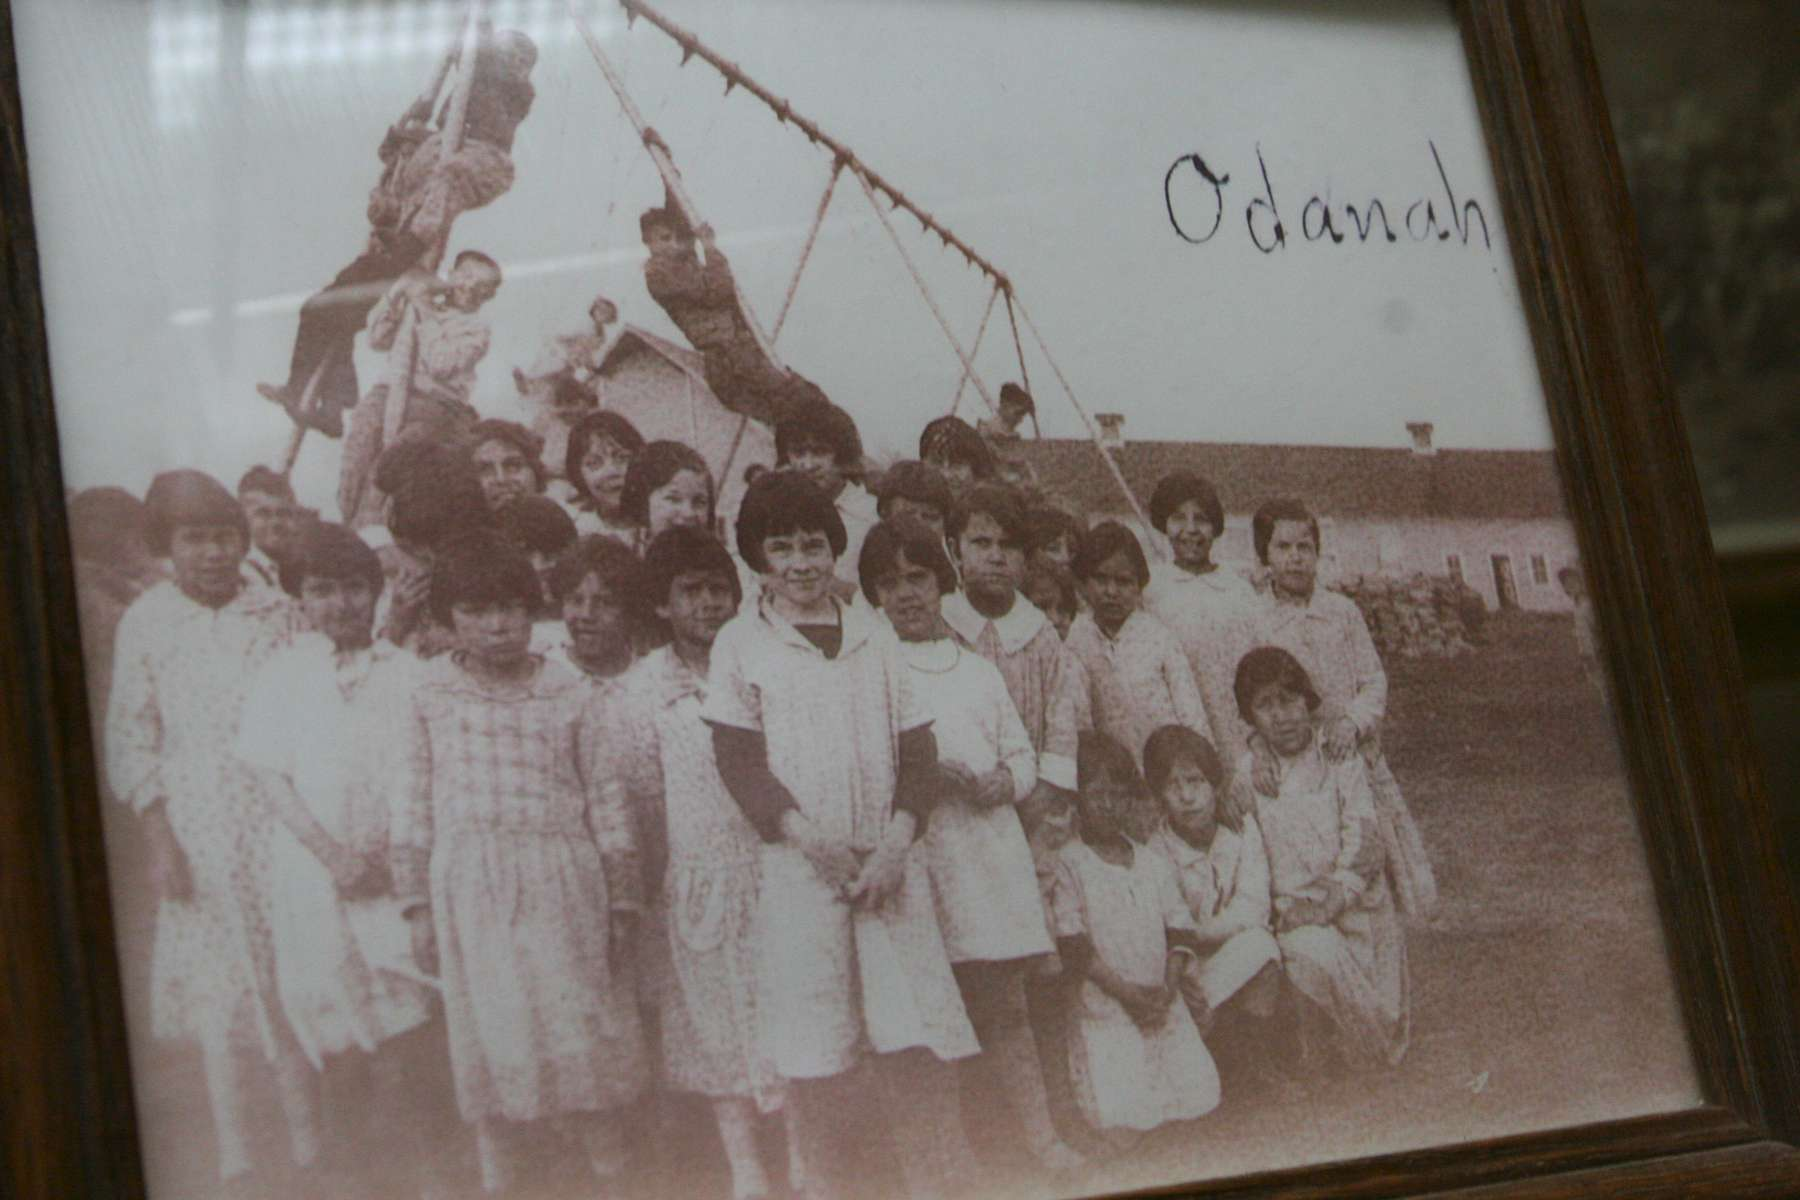 American indian boarding school photos Cached